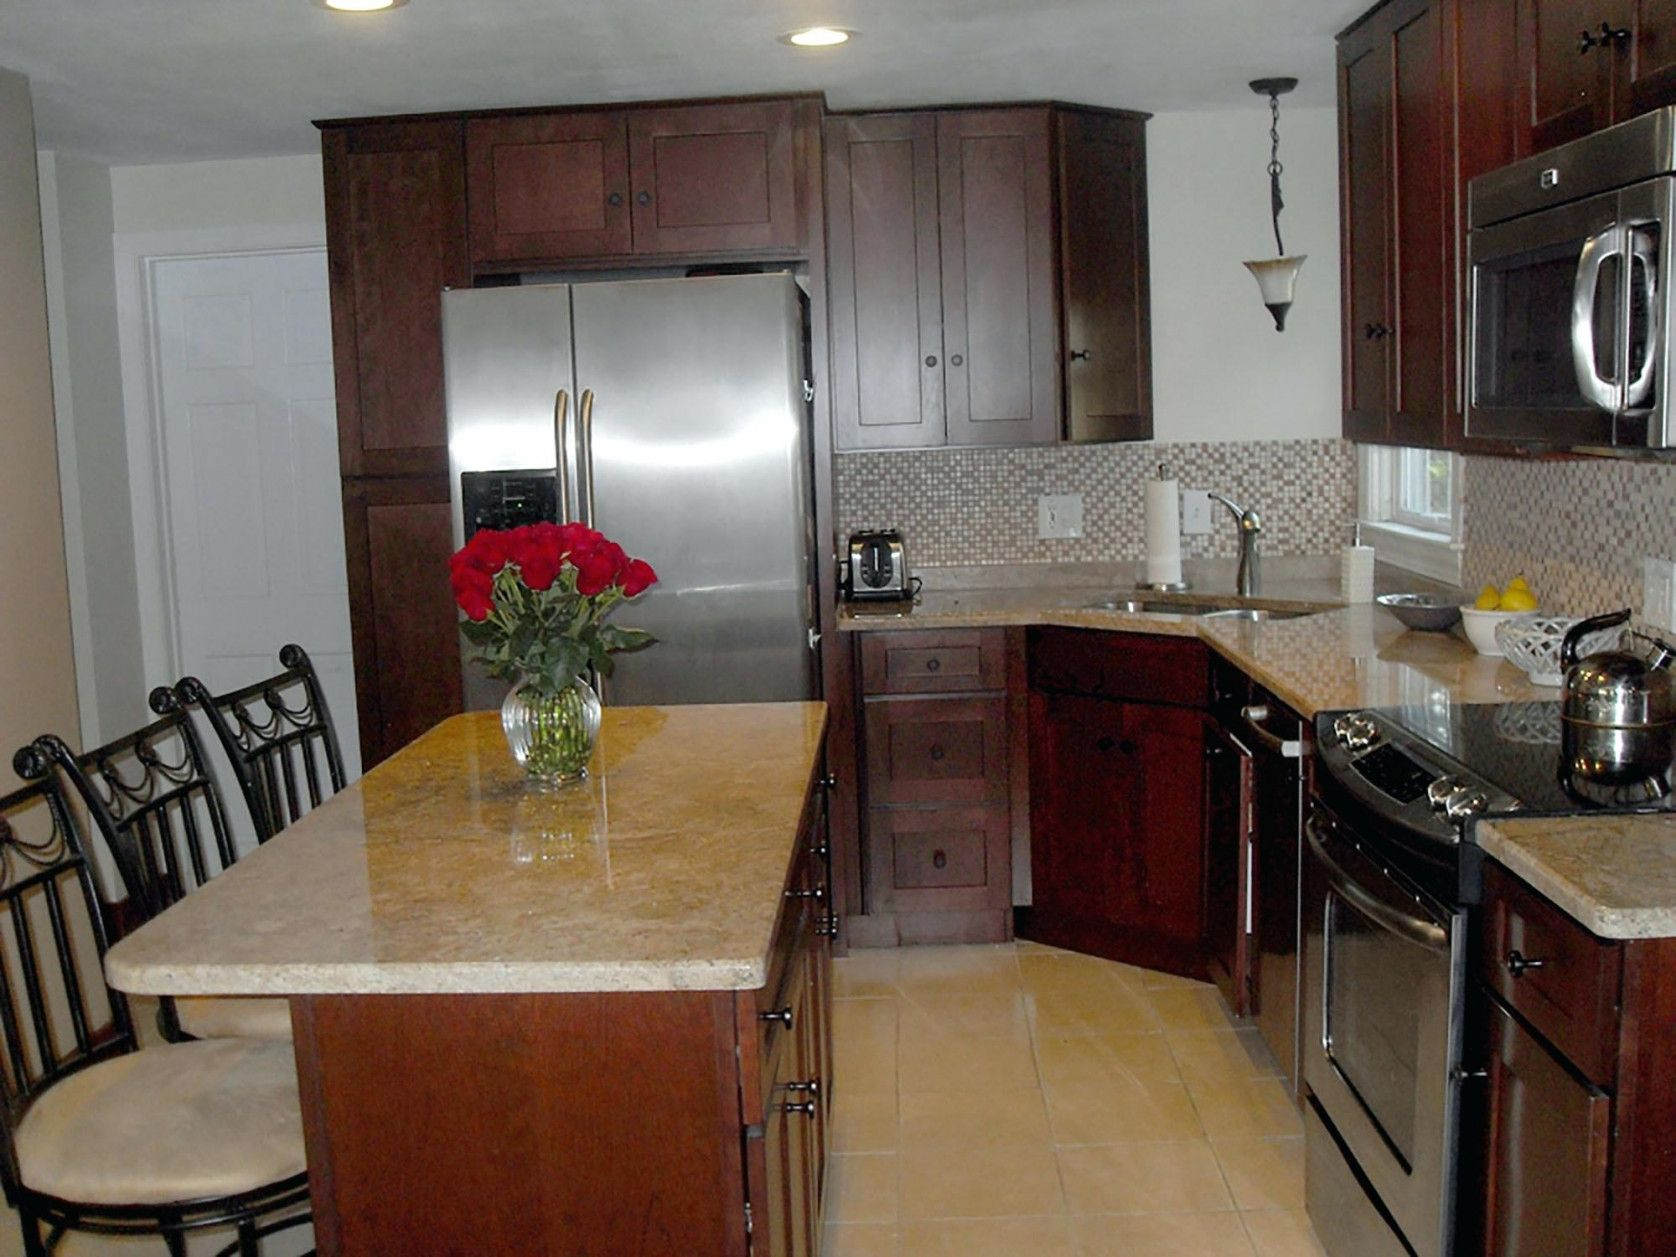 Kitchen Cabinets Ri Built In Trash Cans For The 2018 Backsplash Ideas Check More At Http